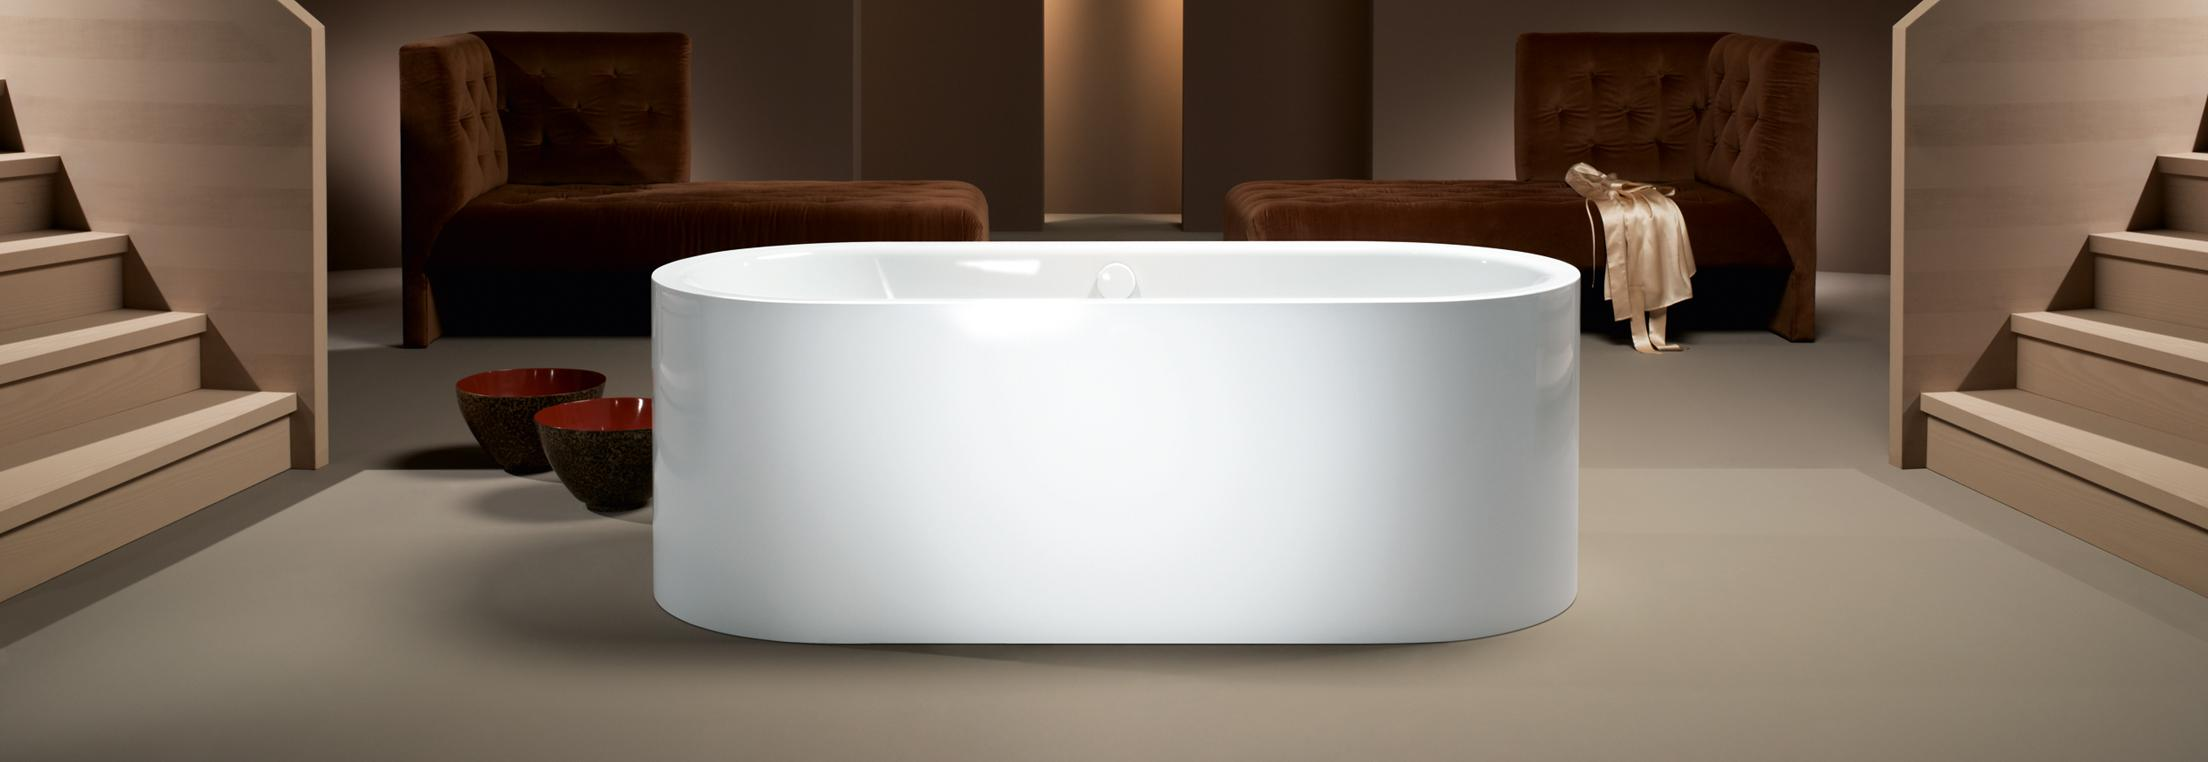 Meisterstück Centro Duo Oval - Winner Bath & Wellness